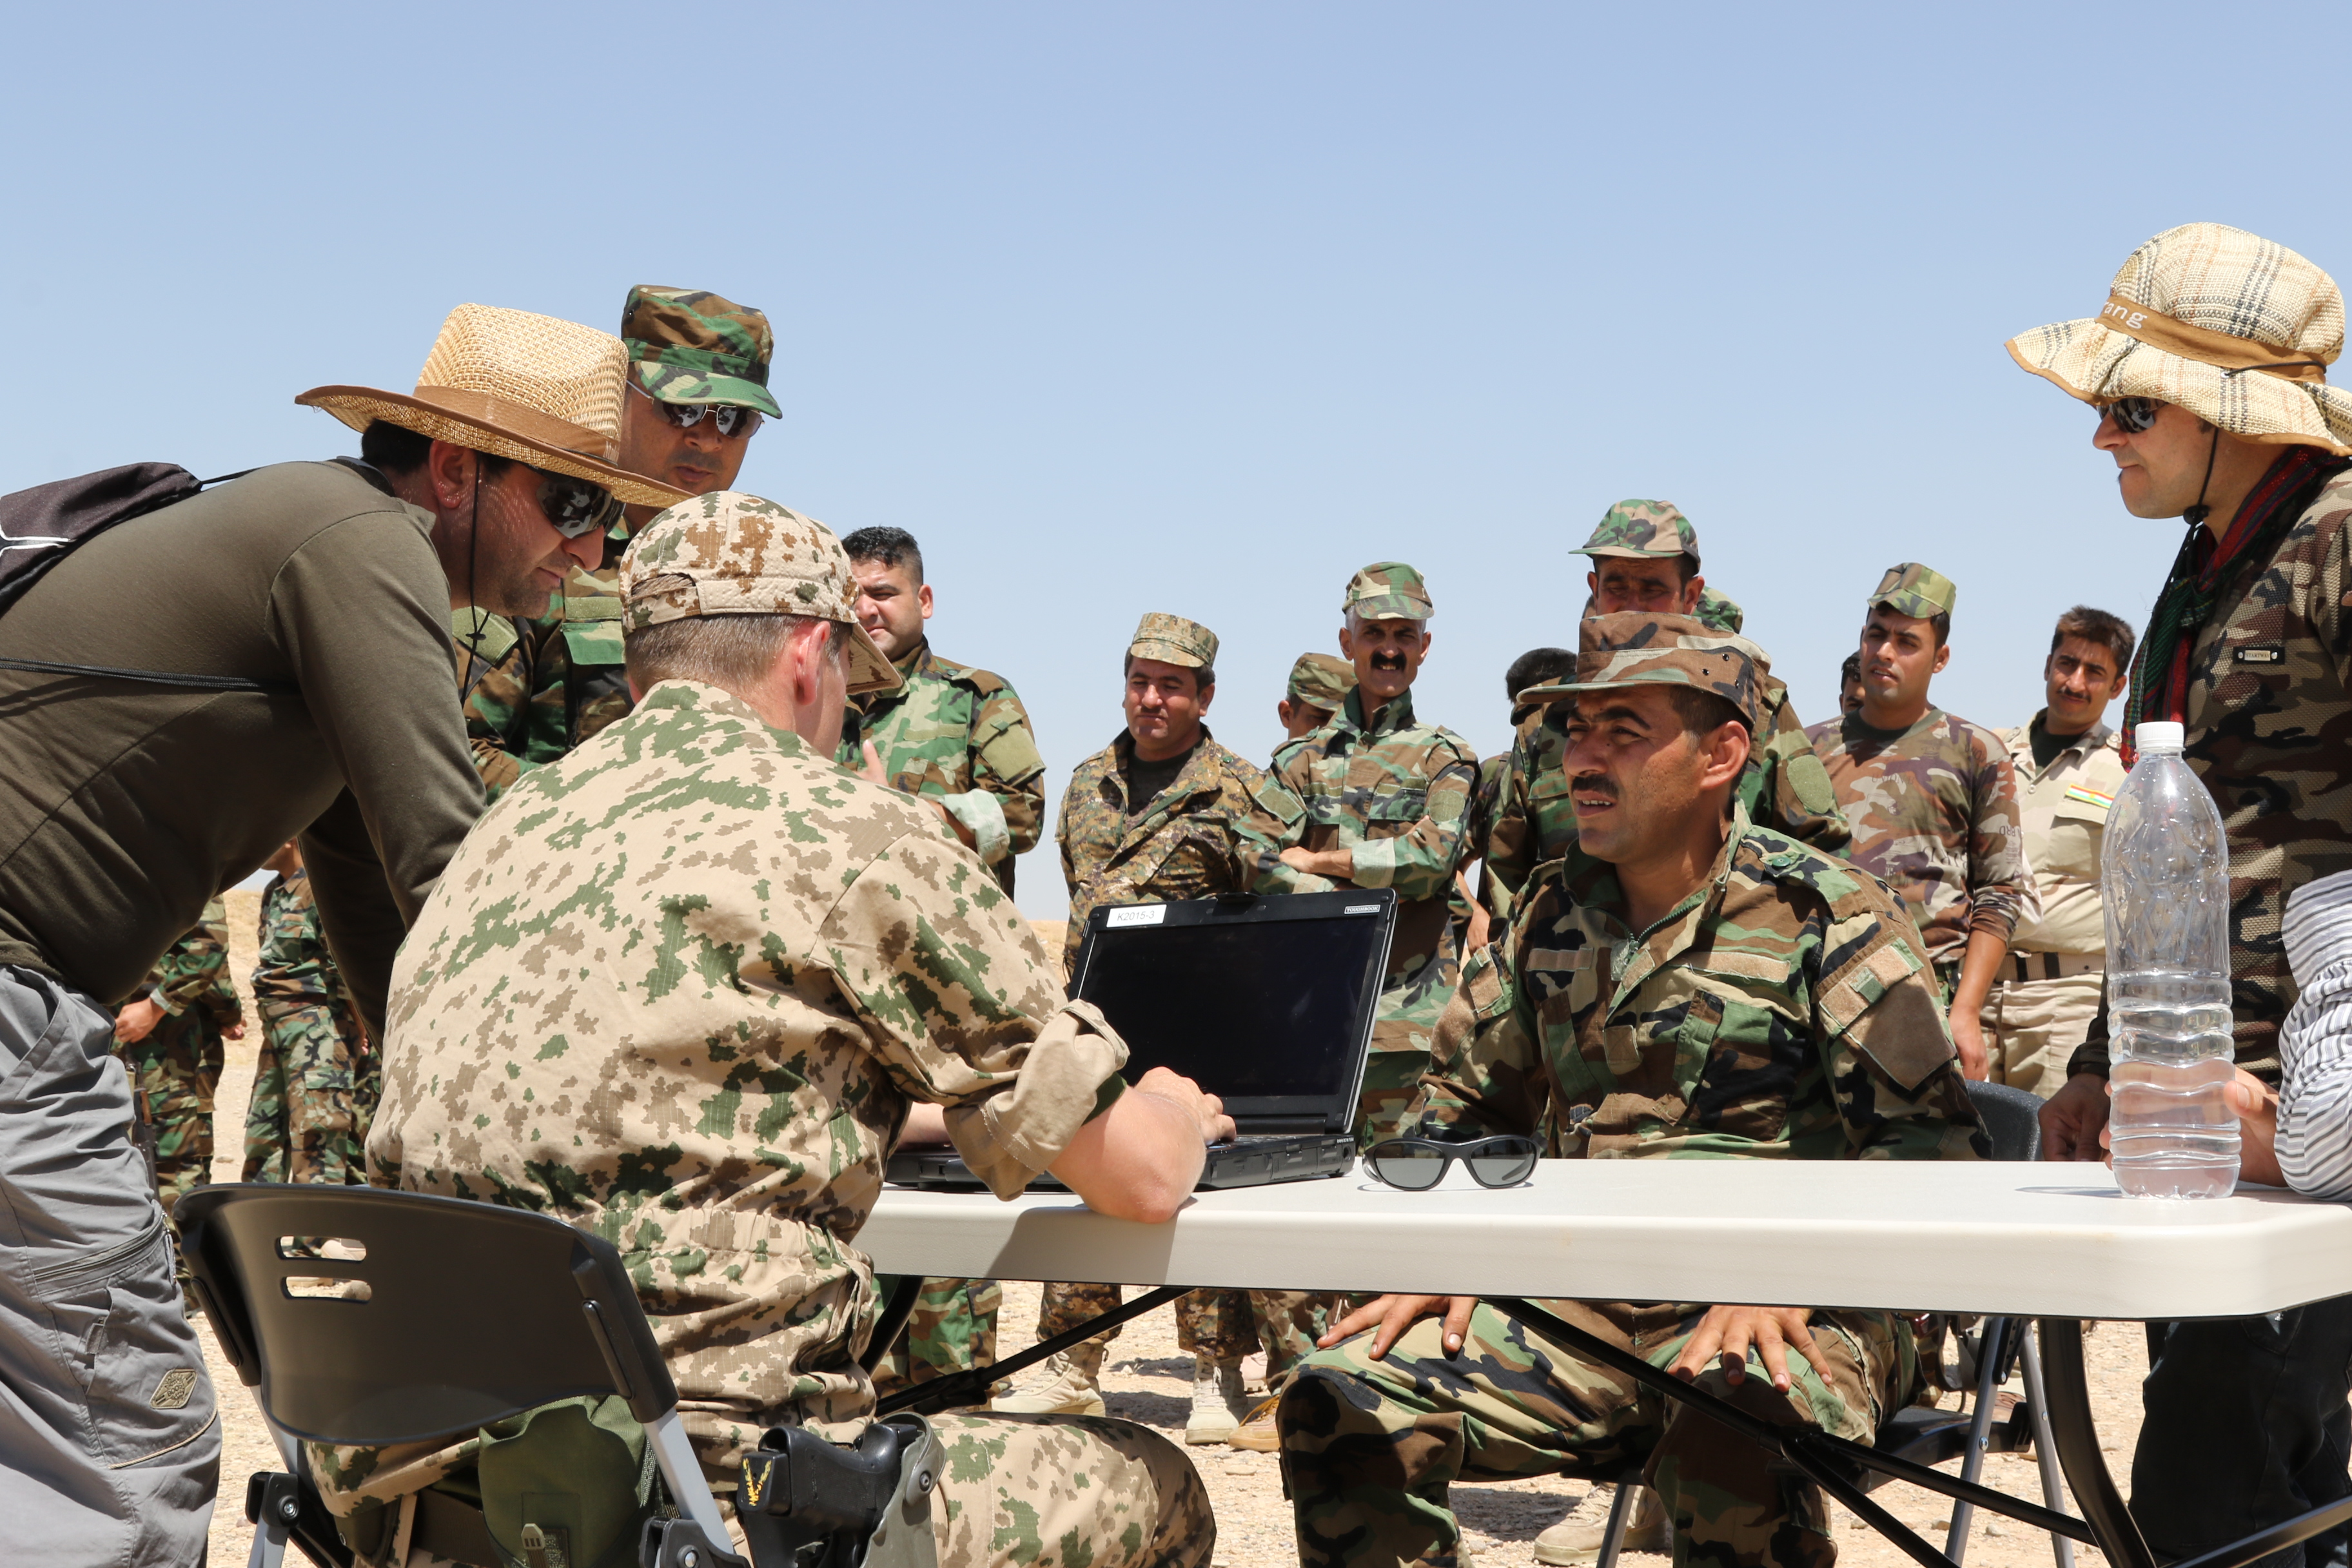 Finland's training contributes to troops' capabilities in Iraq